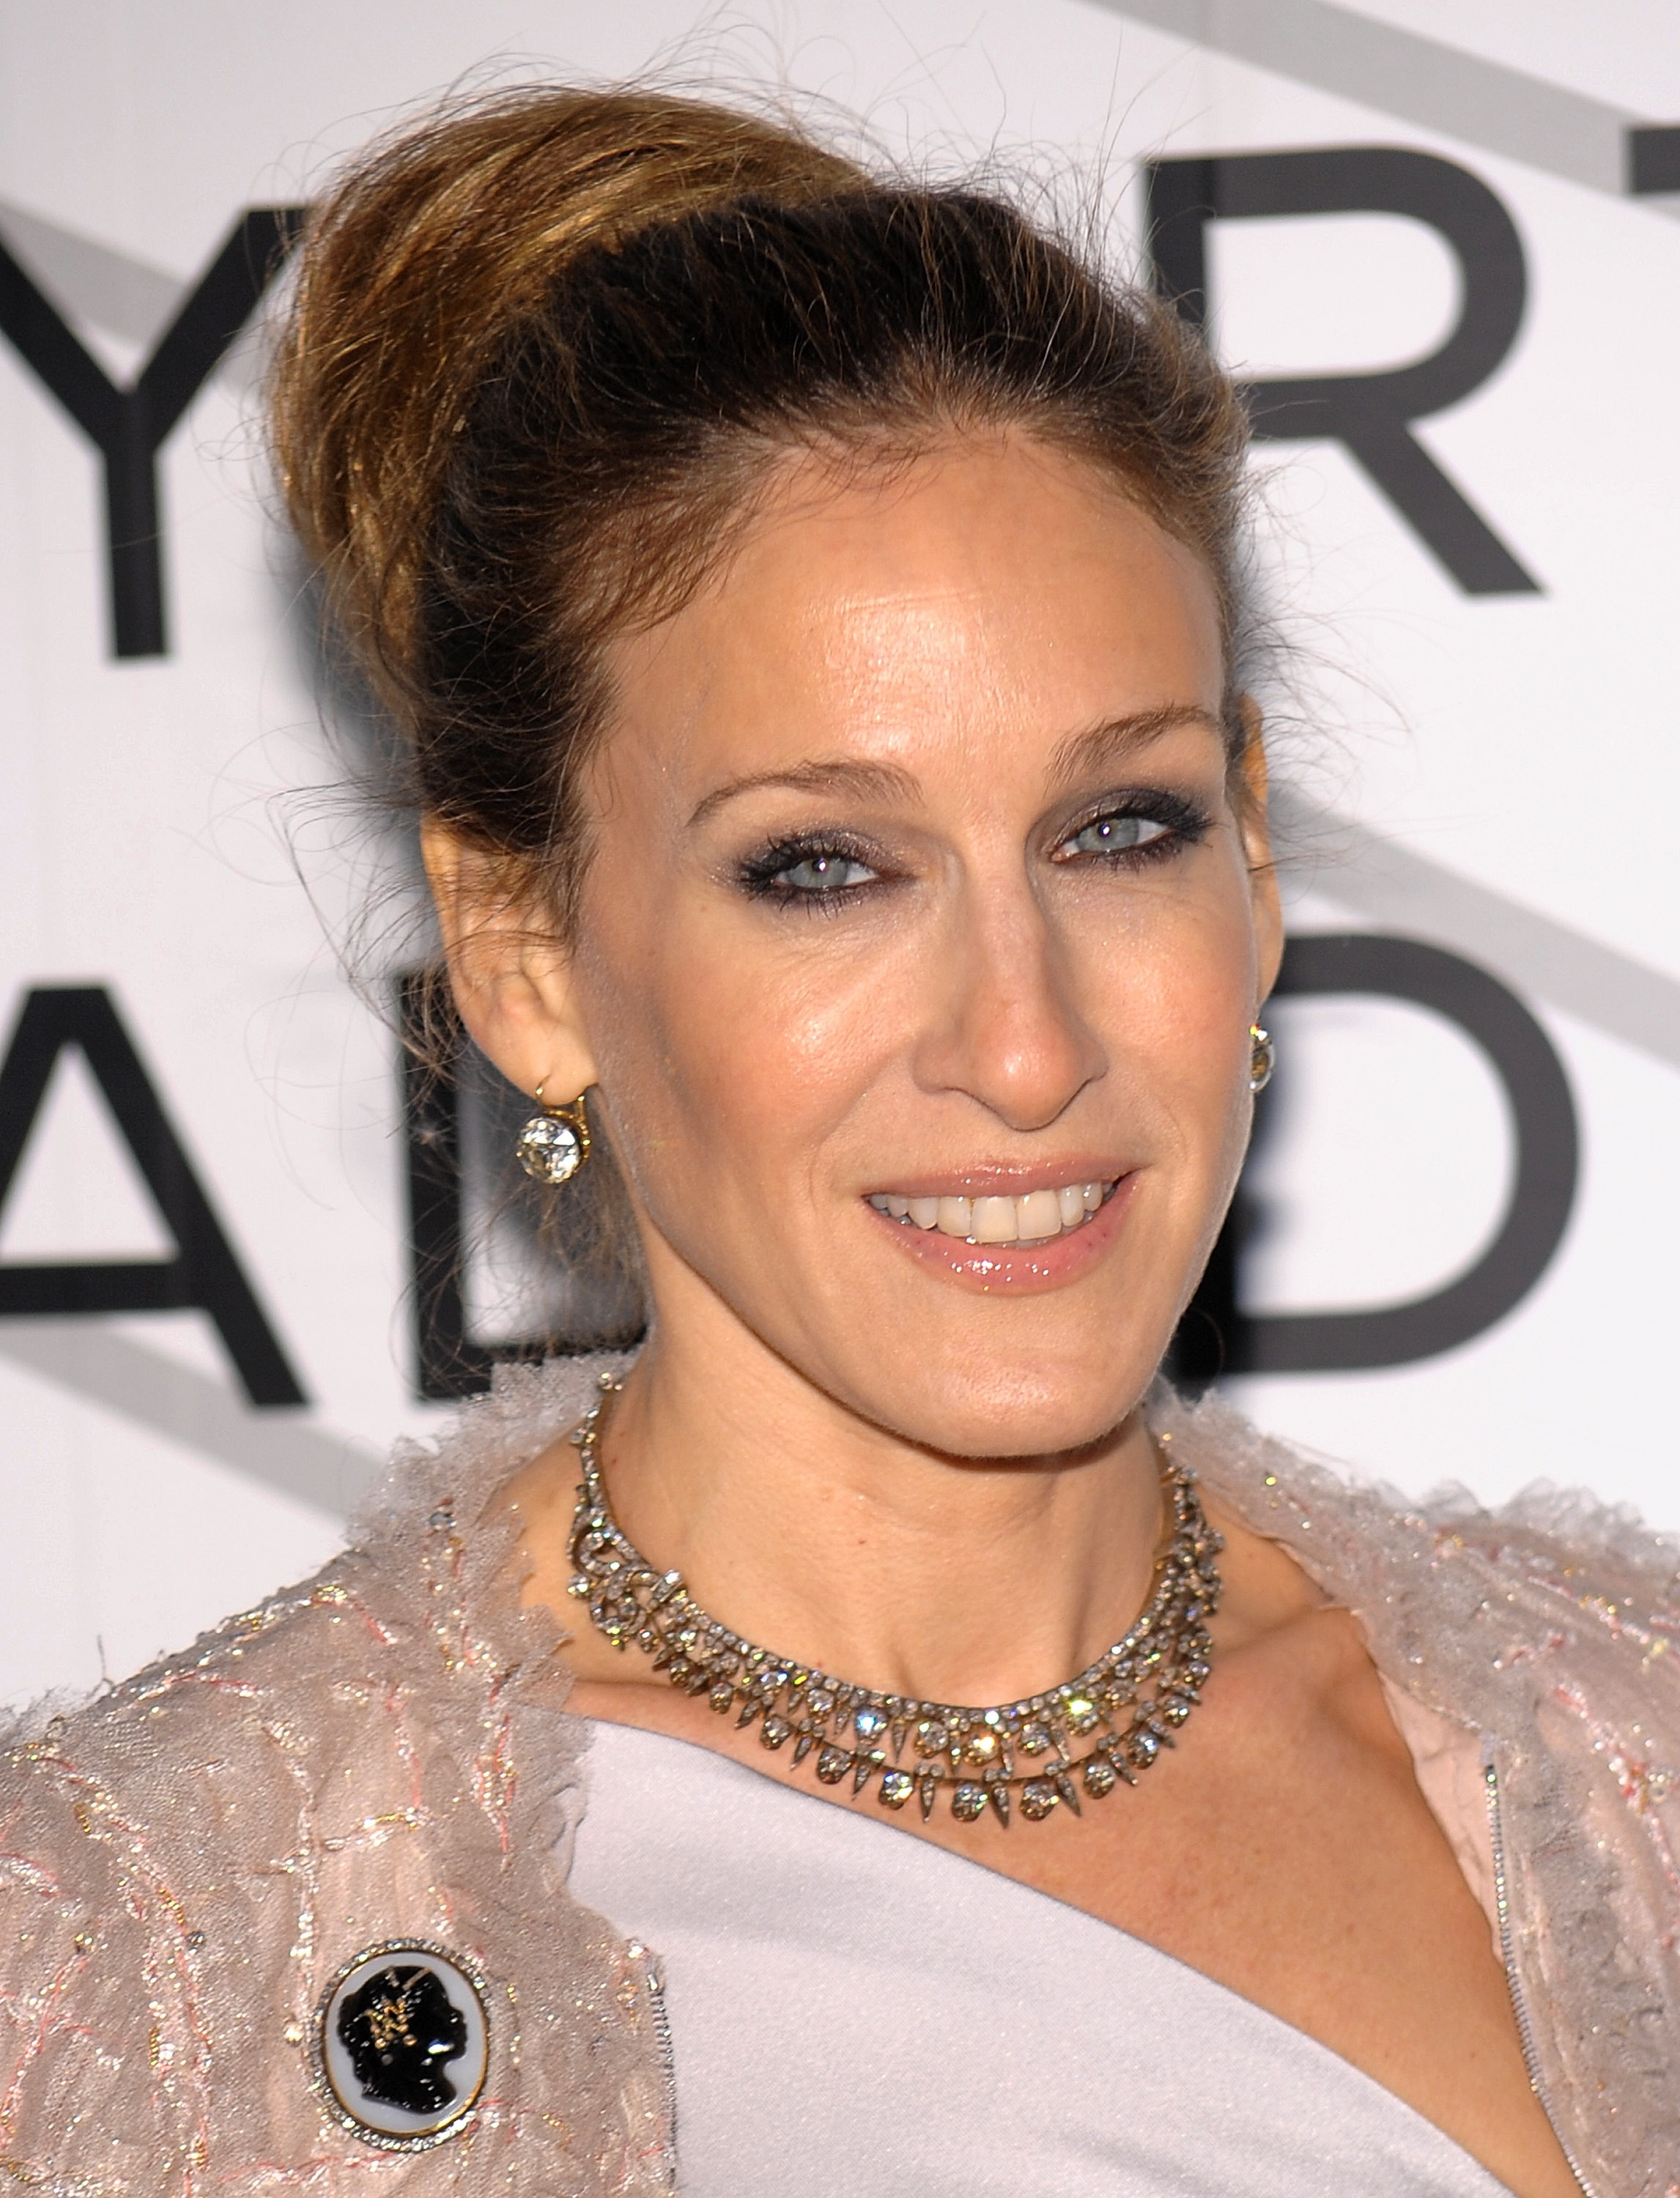 48039_Sarah_Jessica_Parker_-_Opening_party_for_8Mobile_Art_Chanel2_CU_ISA_004_122_451lo.jpg